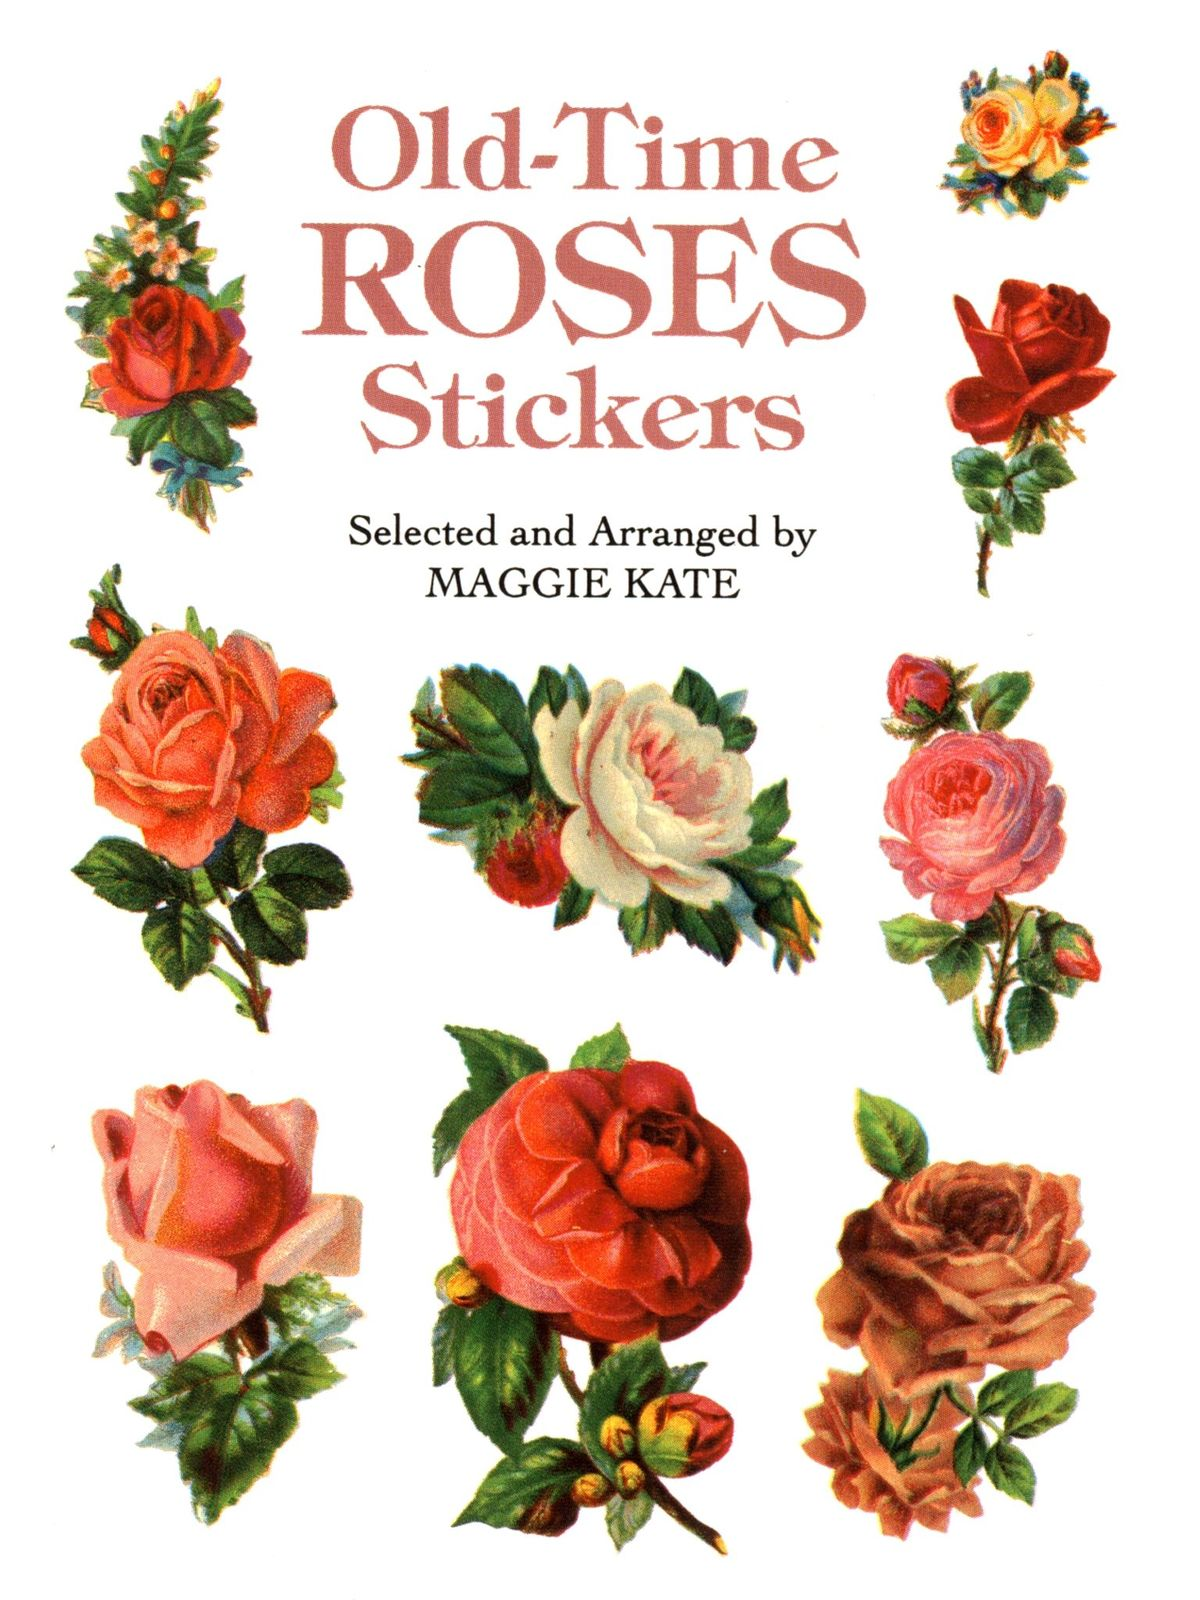 Old-Time Roses Stickers